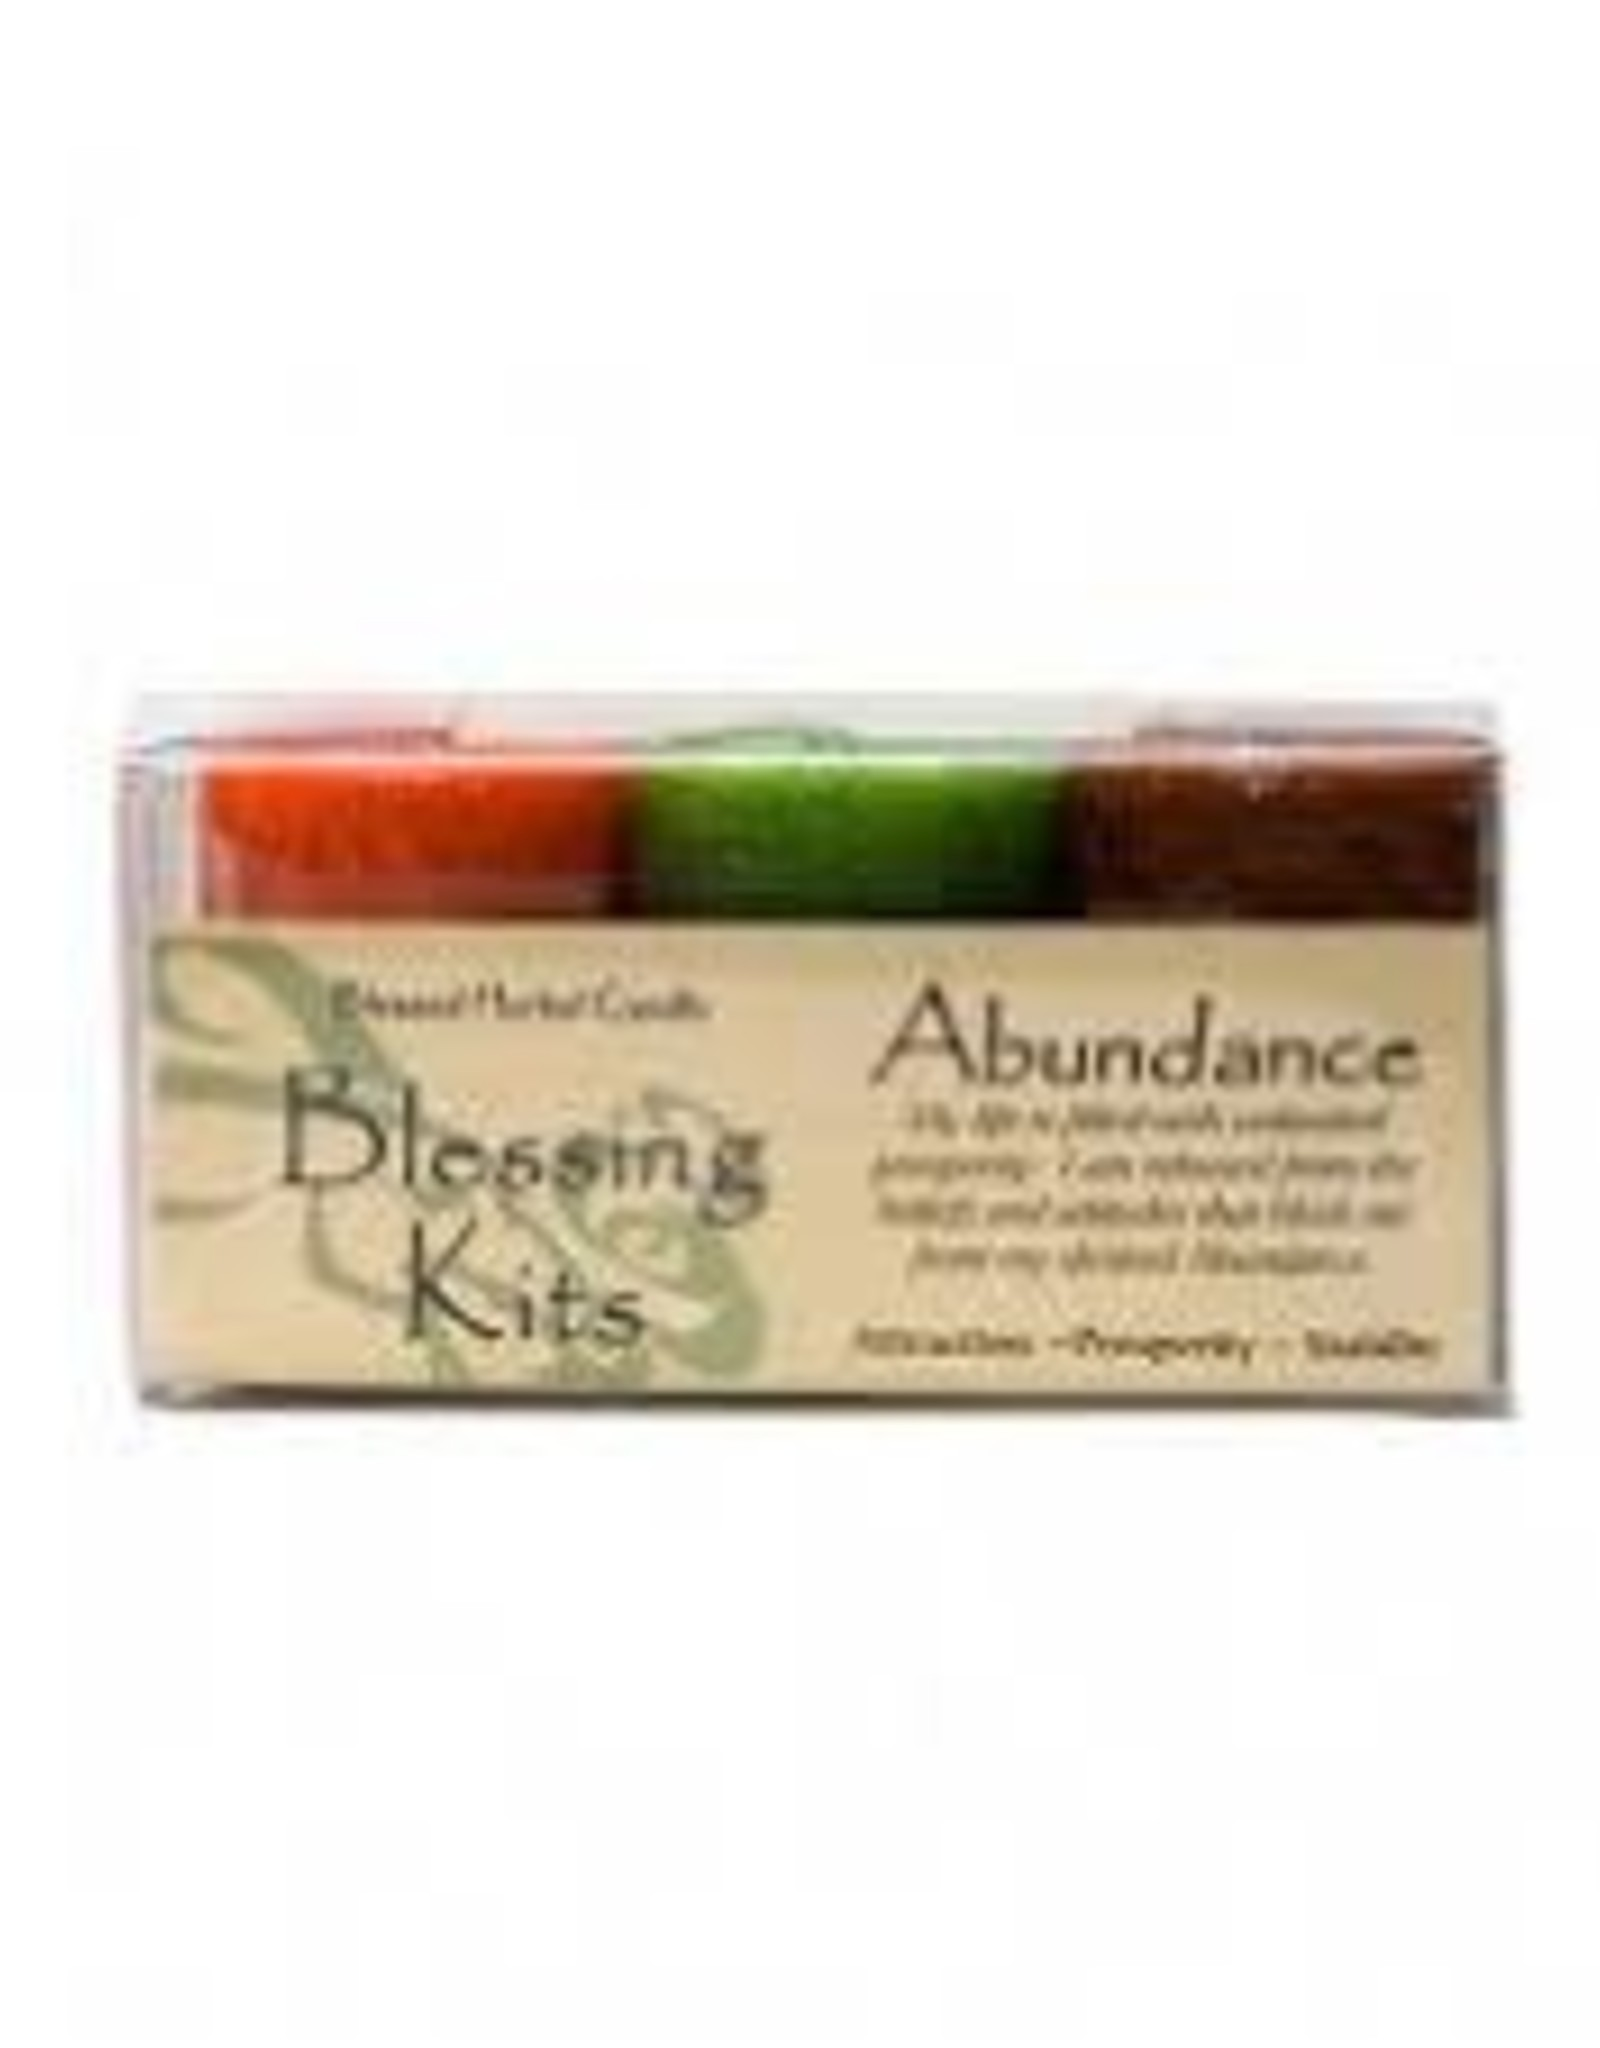 Coventry Creations Candle Blessing Kits - Abundance